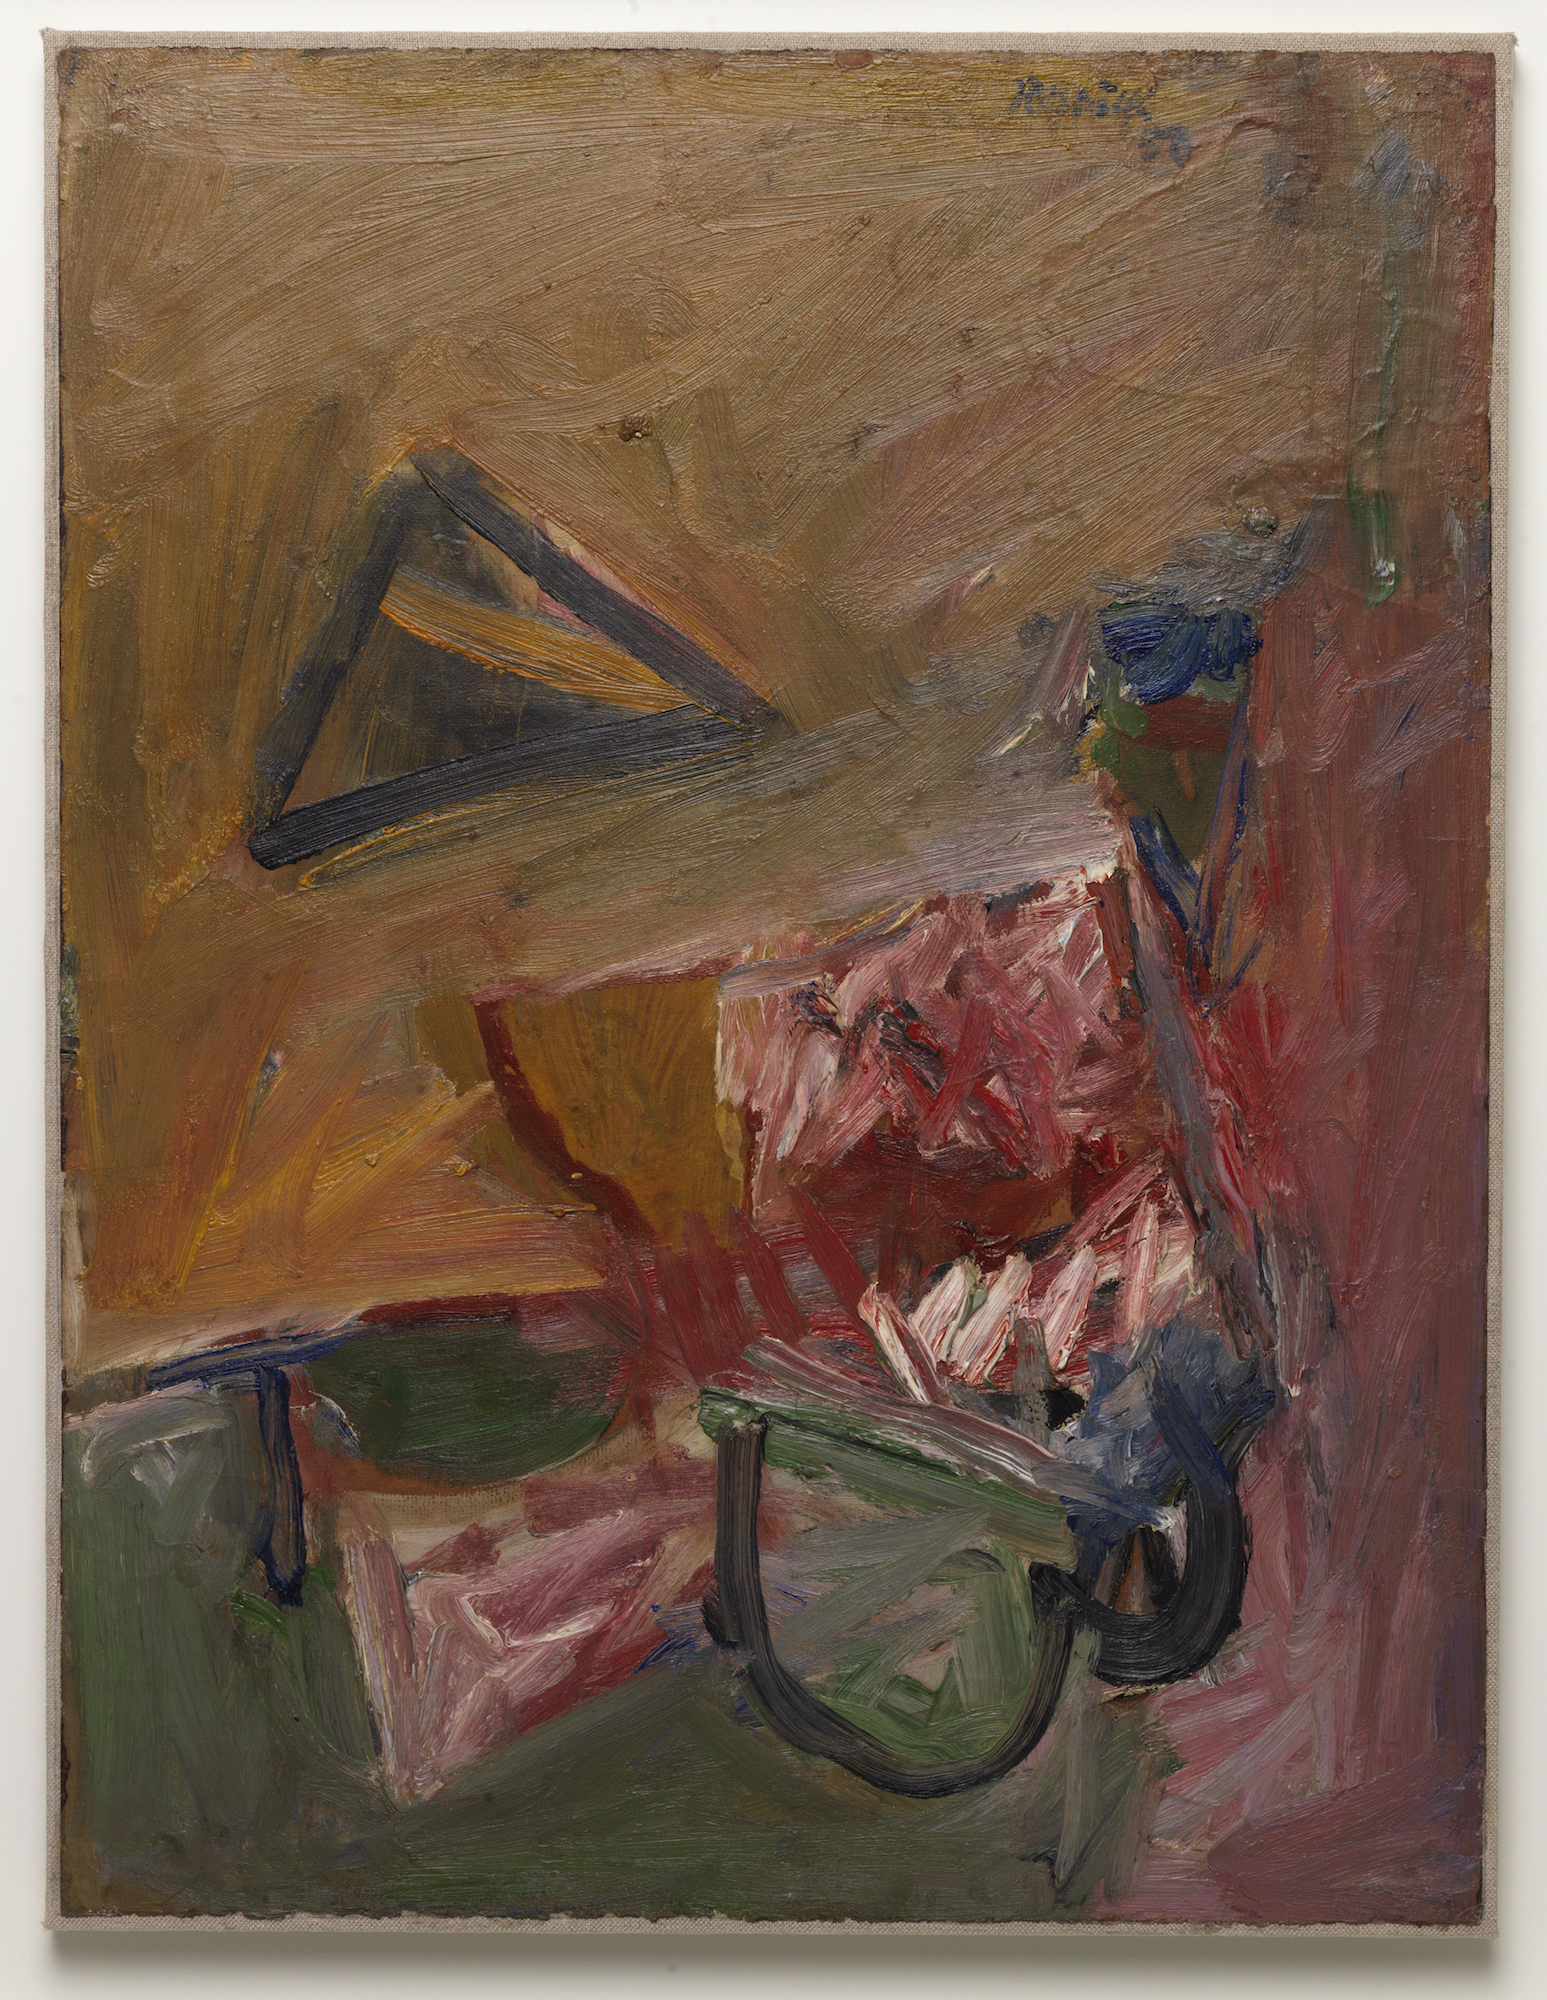 Milton Resnick  Hearts and Darts , 1957 Oil on board 26.75 x 20.5 inches